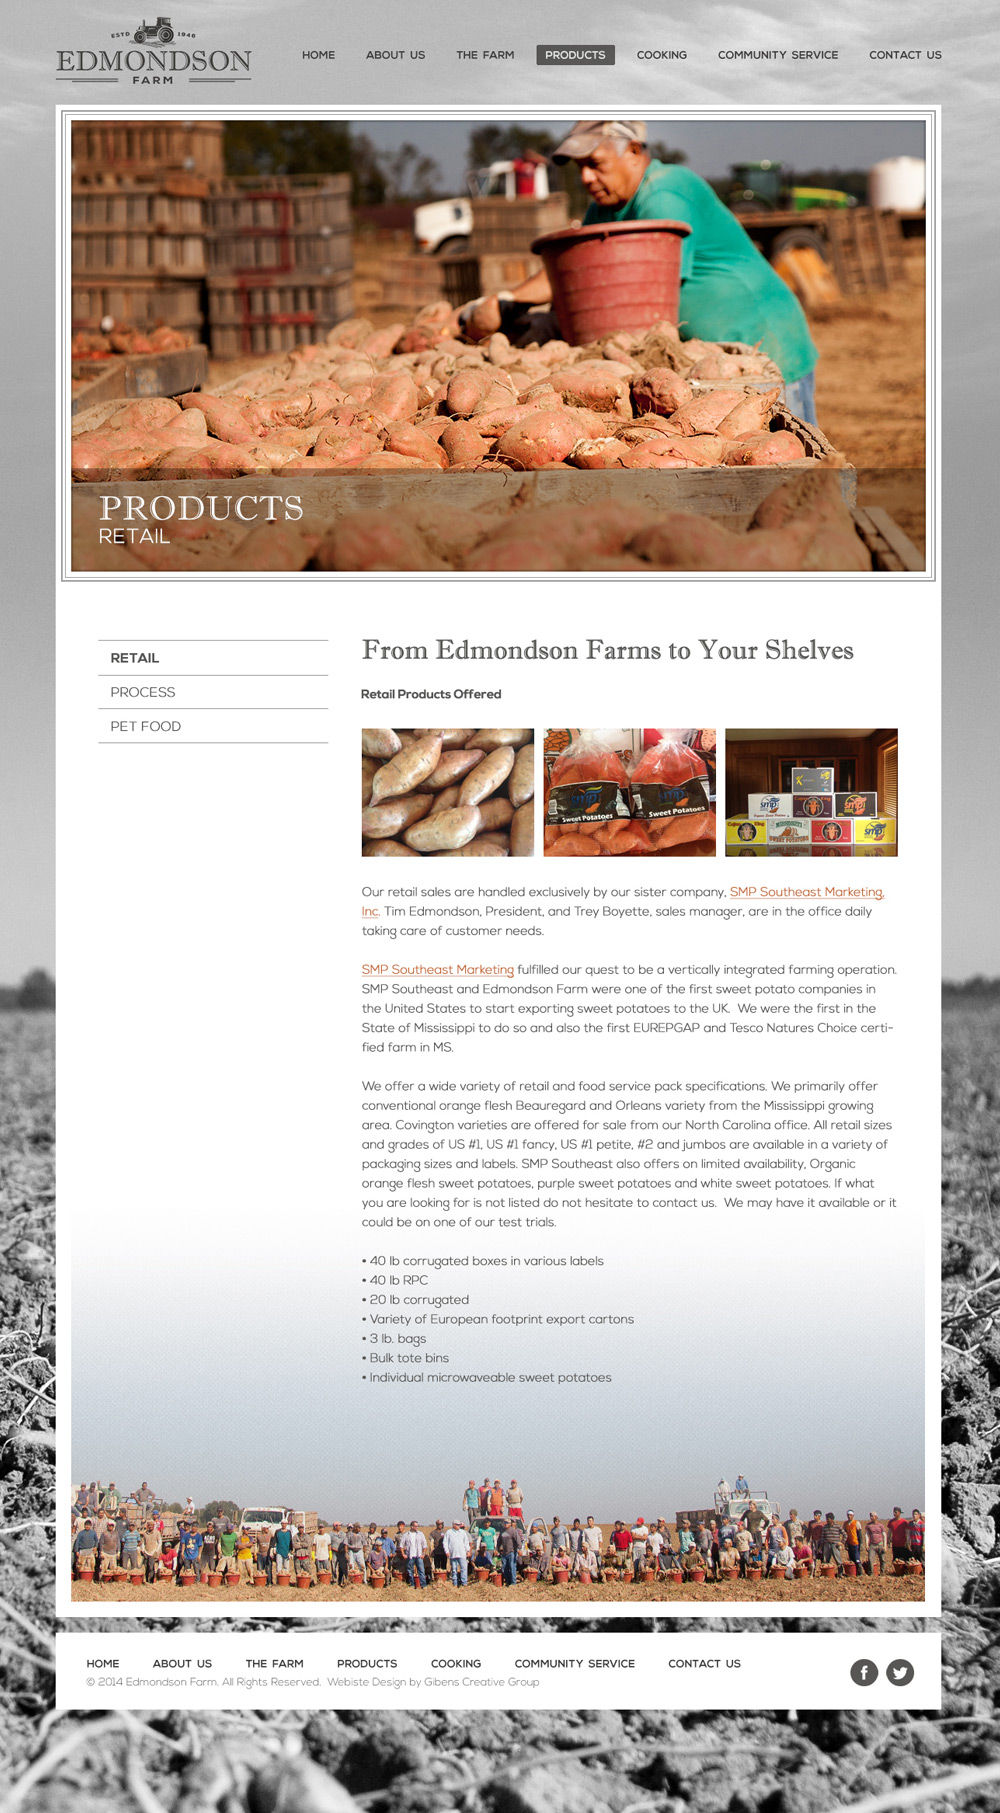 edmondsonFarm_Products_Full